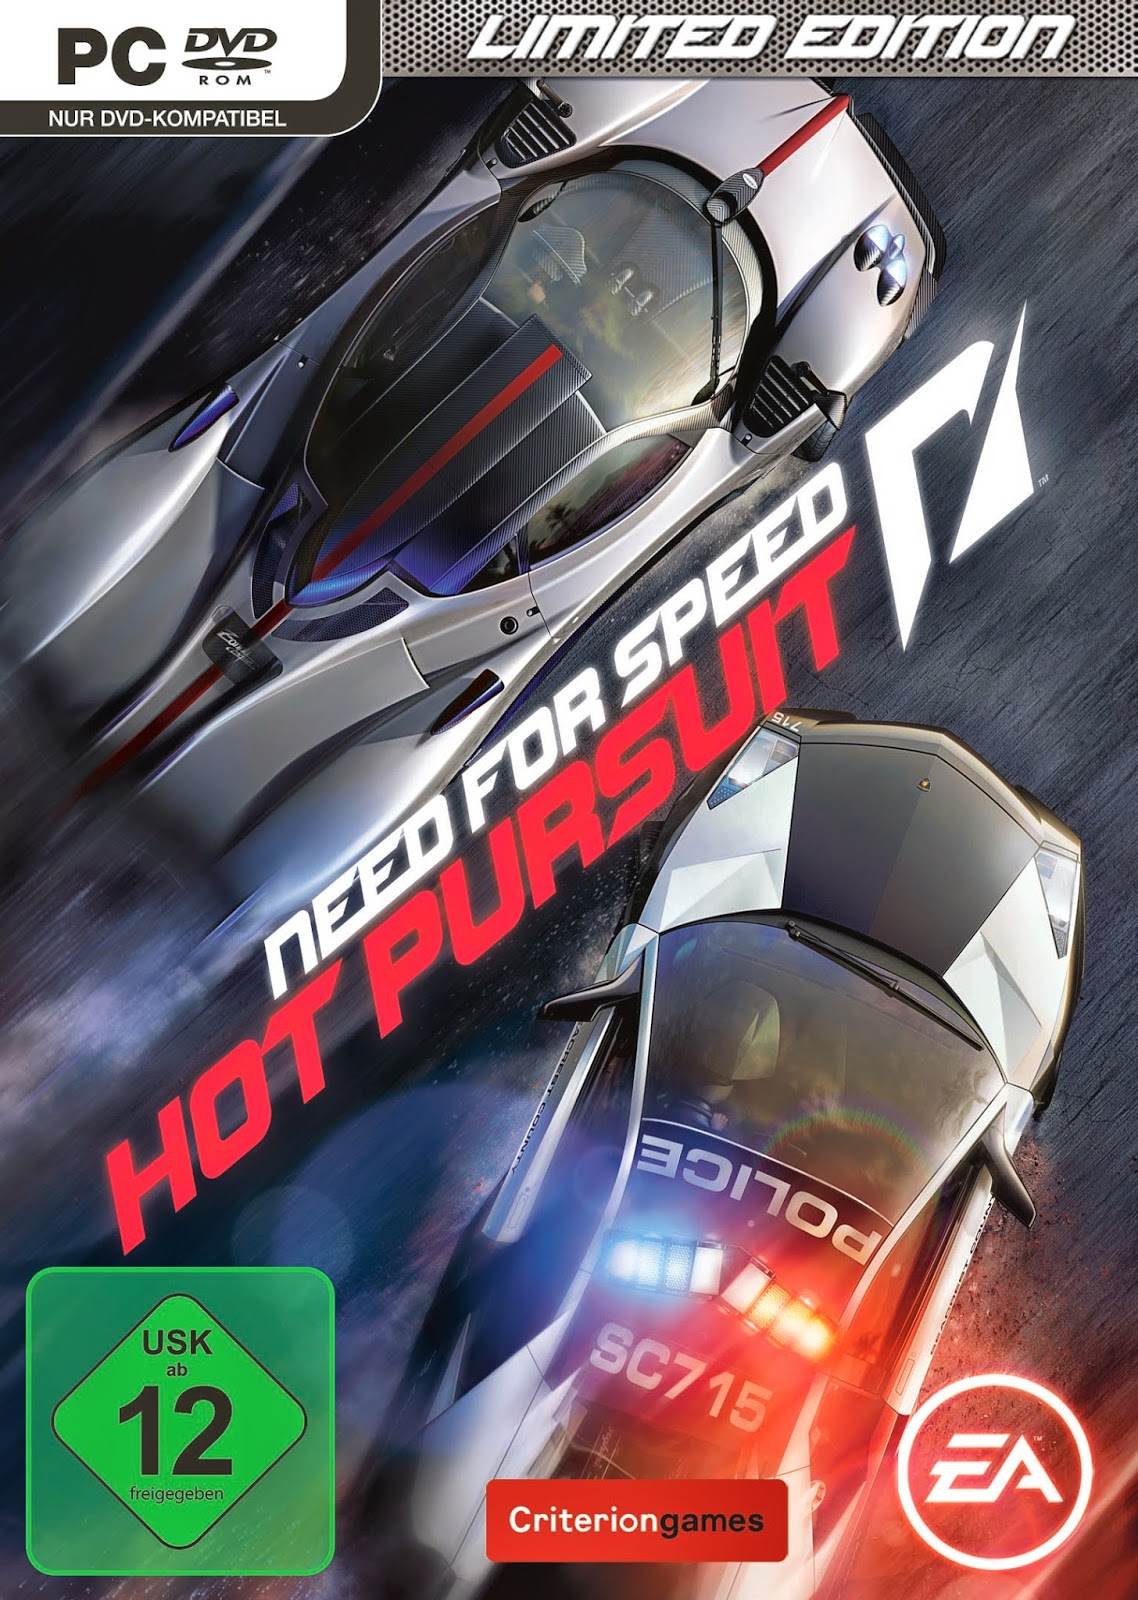 http://www.amazon.de/Need-for-Speed-Hot-Pursuit/dp/B003RISKN6/ref=sr_1_4?ie=UTF8&qid=1406038184&sr=8-4&keywords=Need+For+Speed+-+Hot+Pursuit